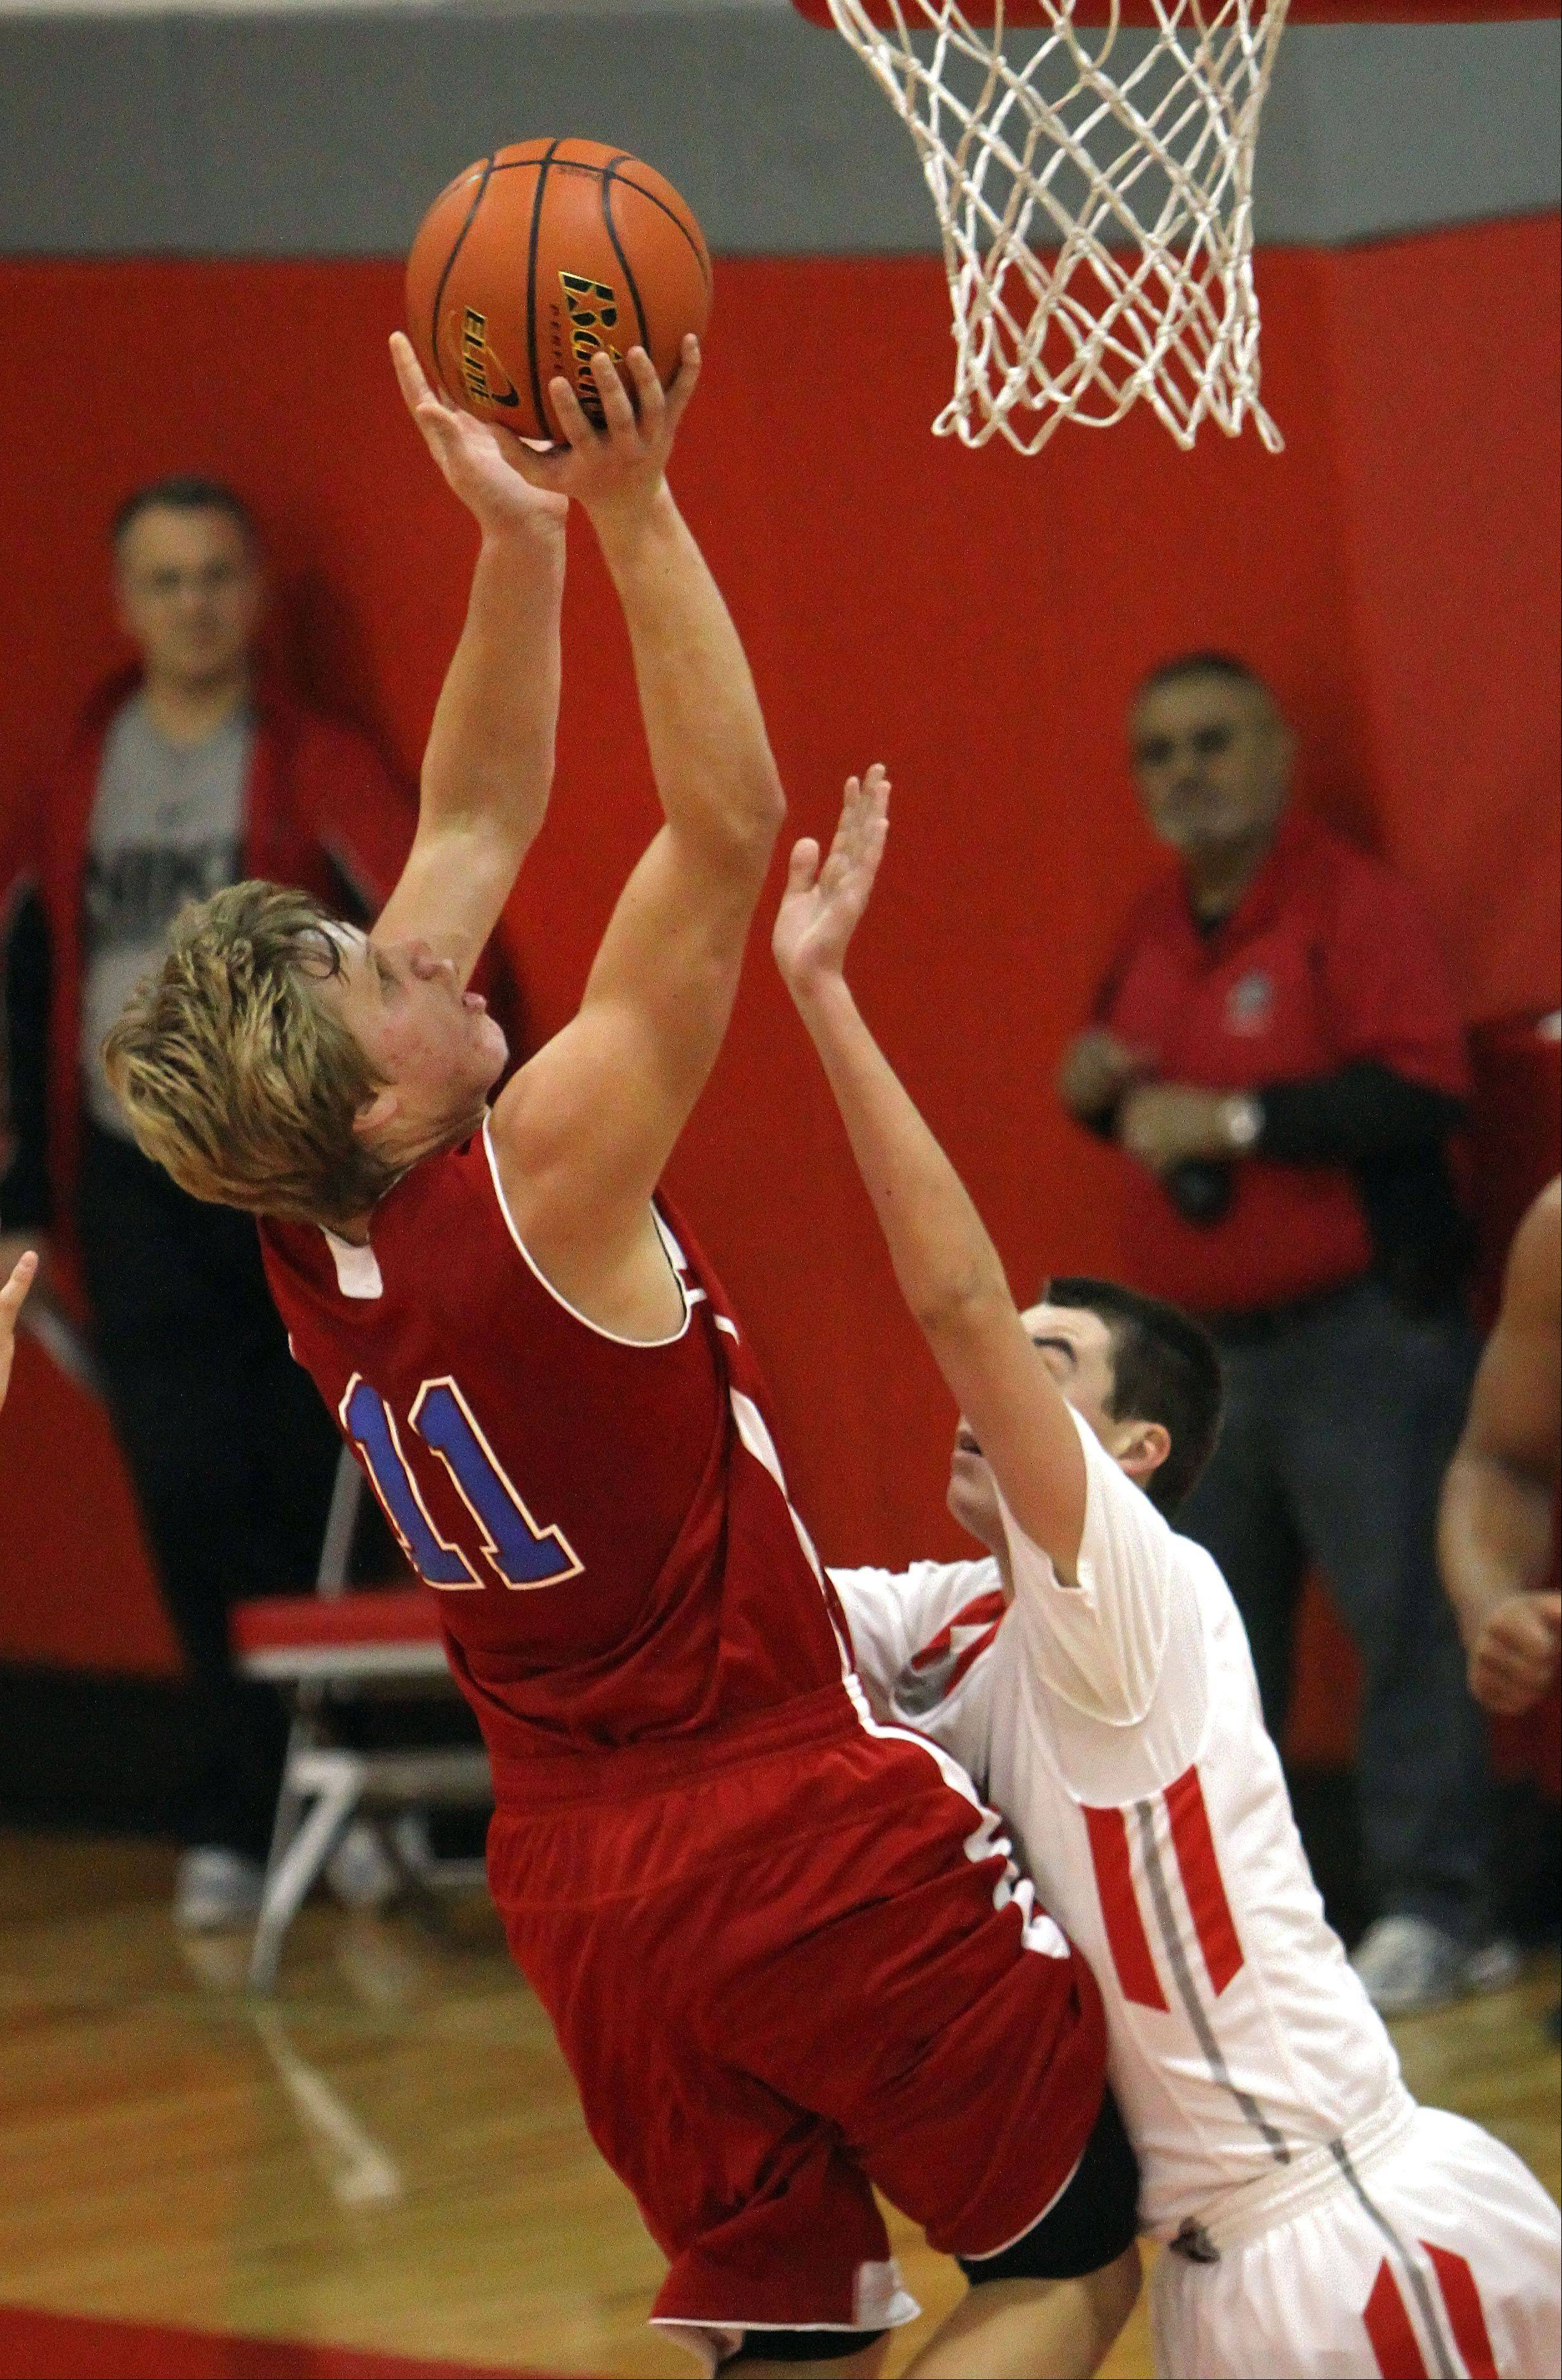 Lakes' Justin Burgeron, left, drives on Mundelein's Derek Parola on Tuesday night at Mundelein.